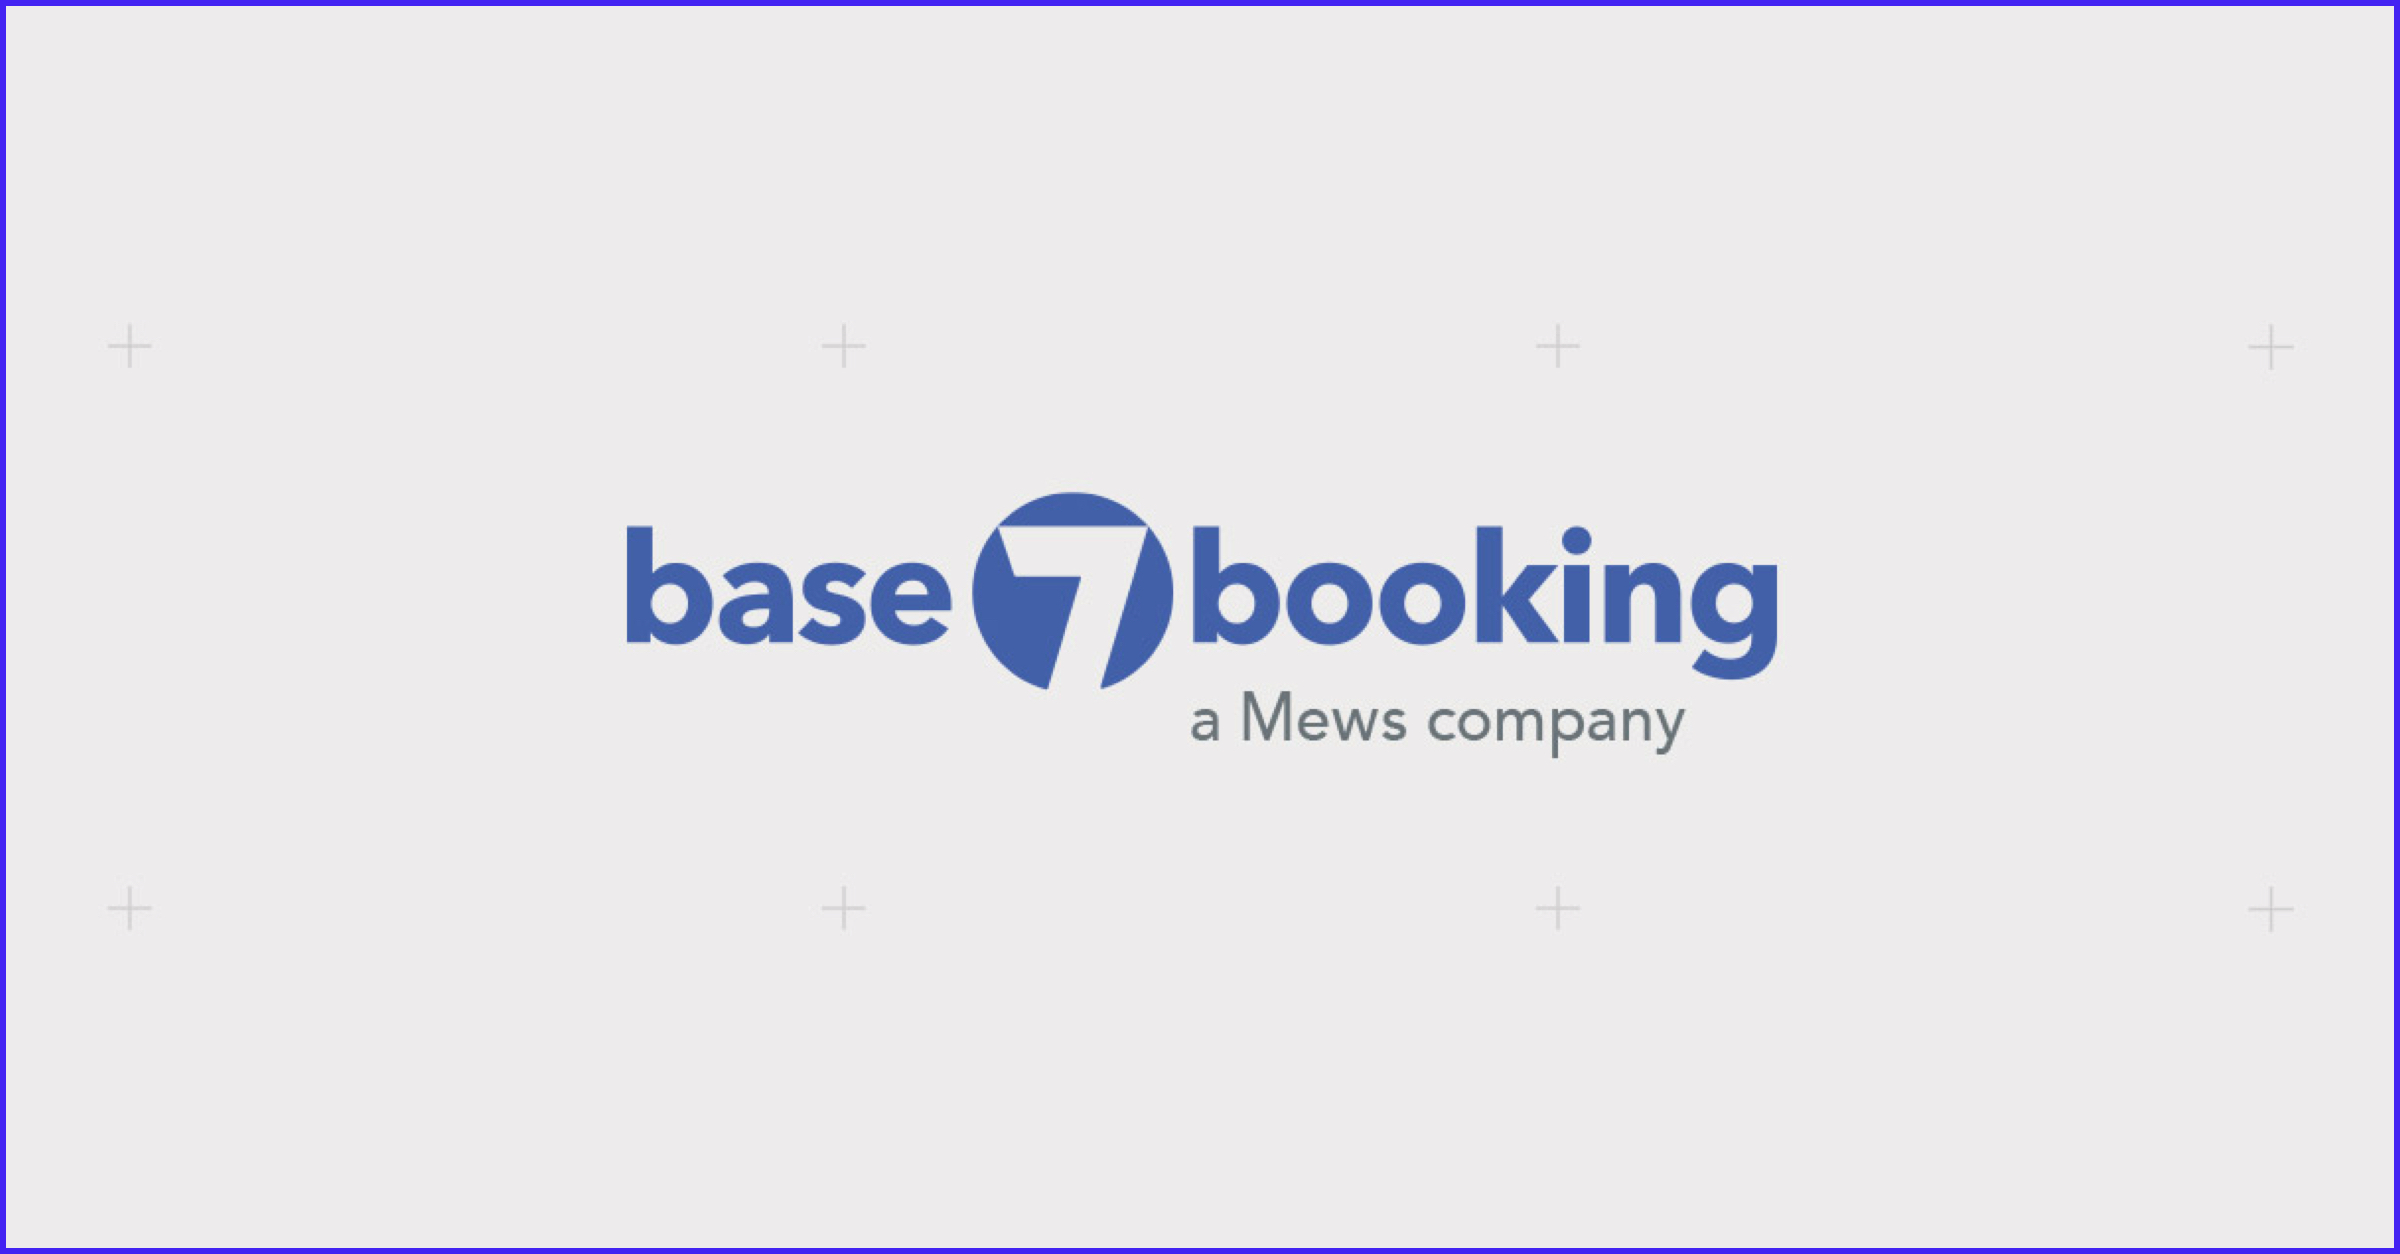 MEWS to acquire Base7Booking